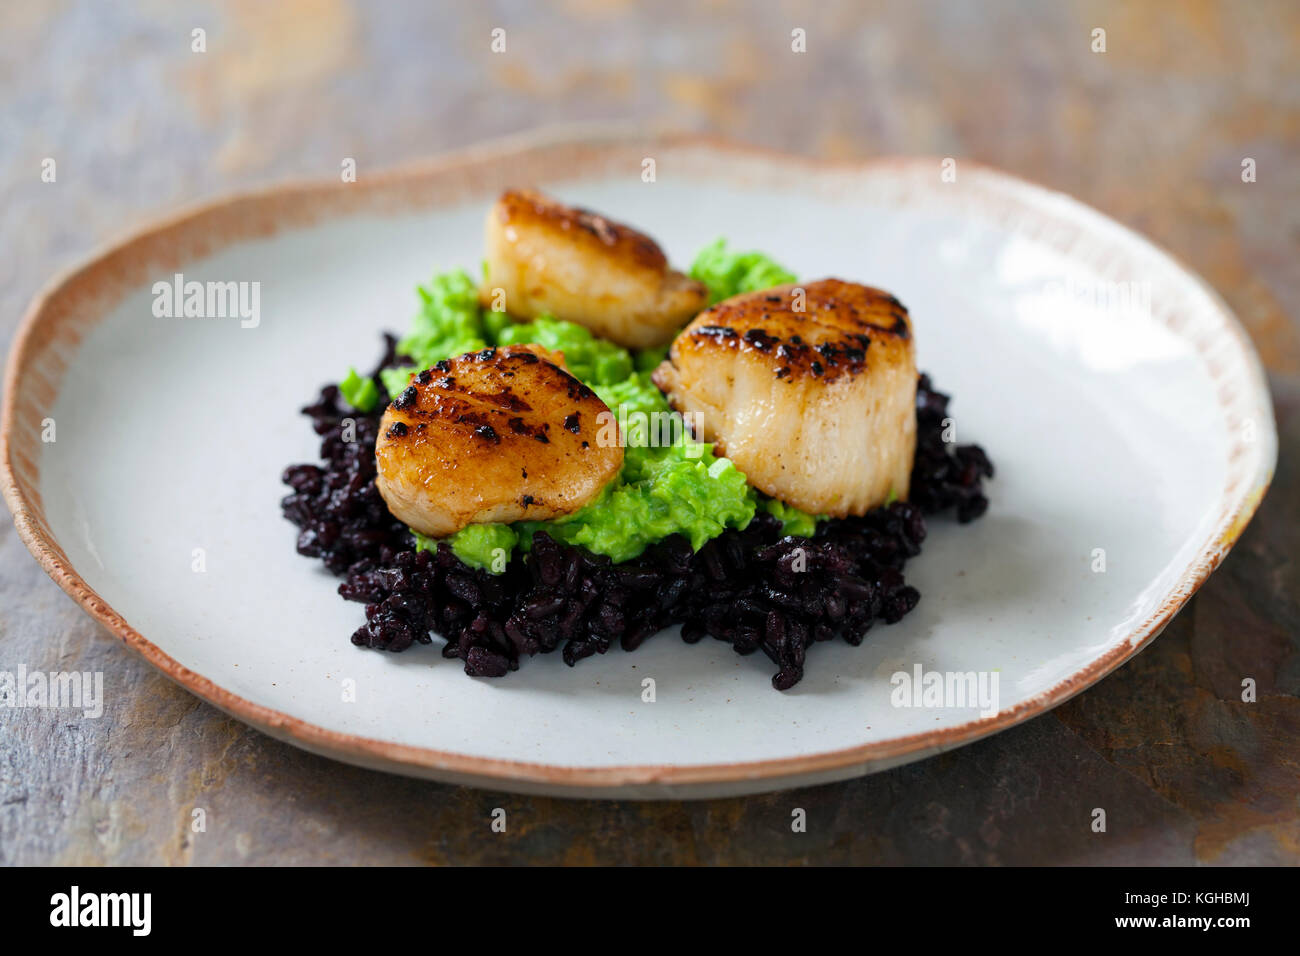 Scallops with black forbidden rice and pea puree - Stock Image